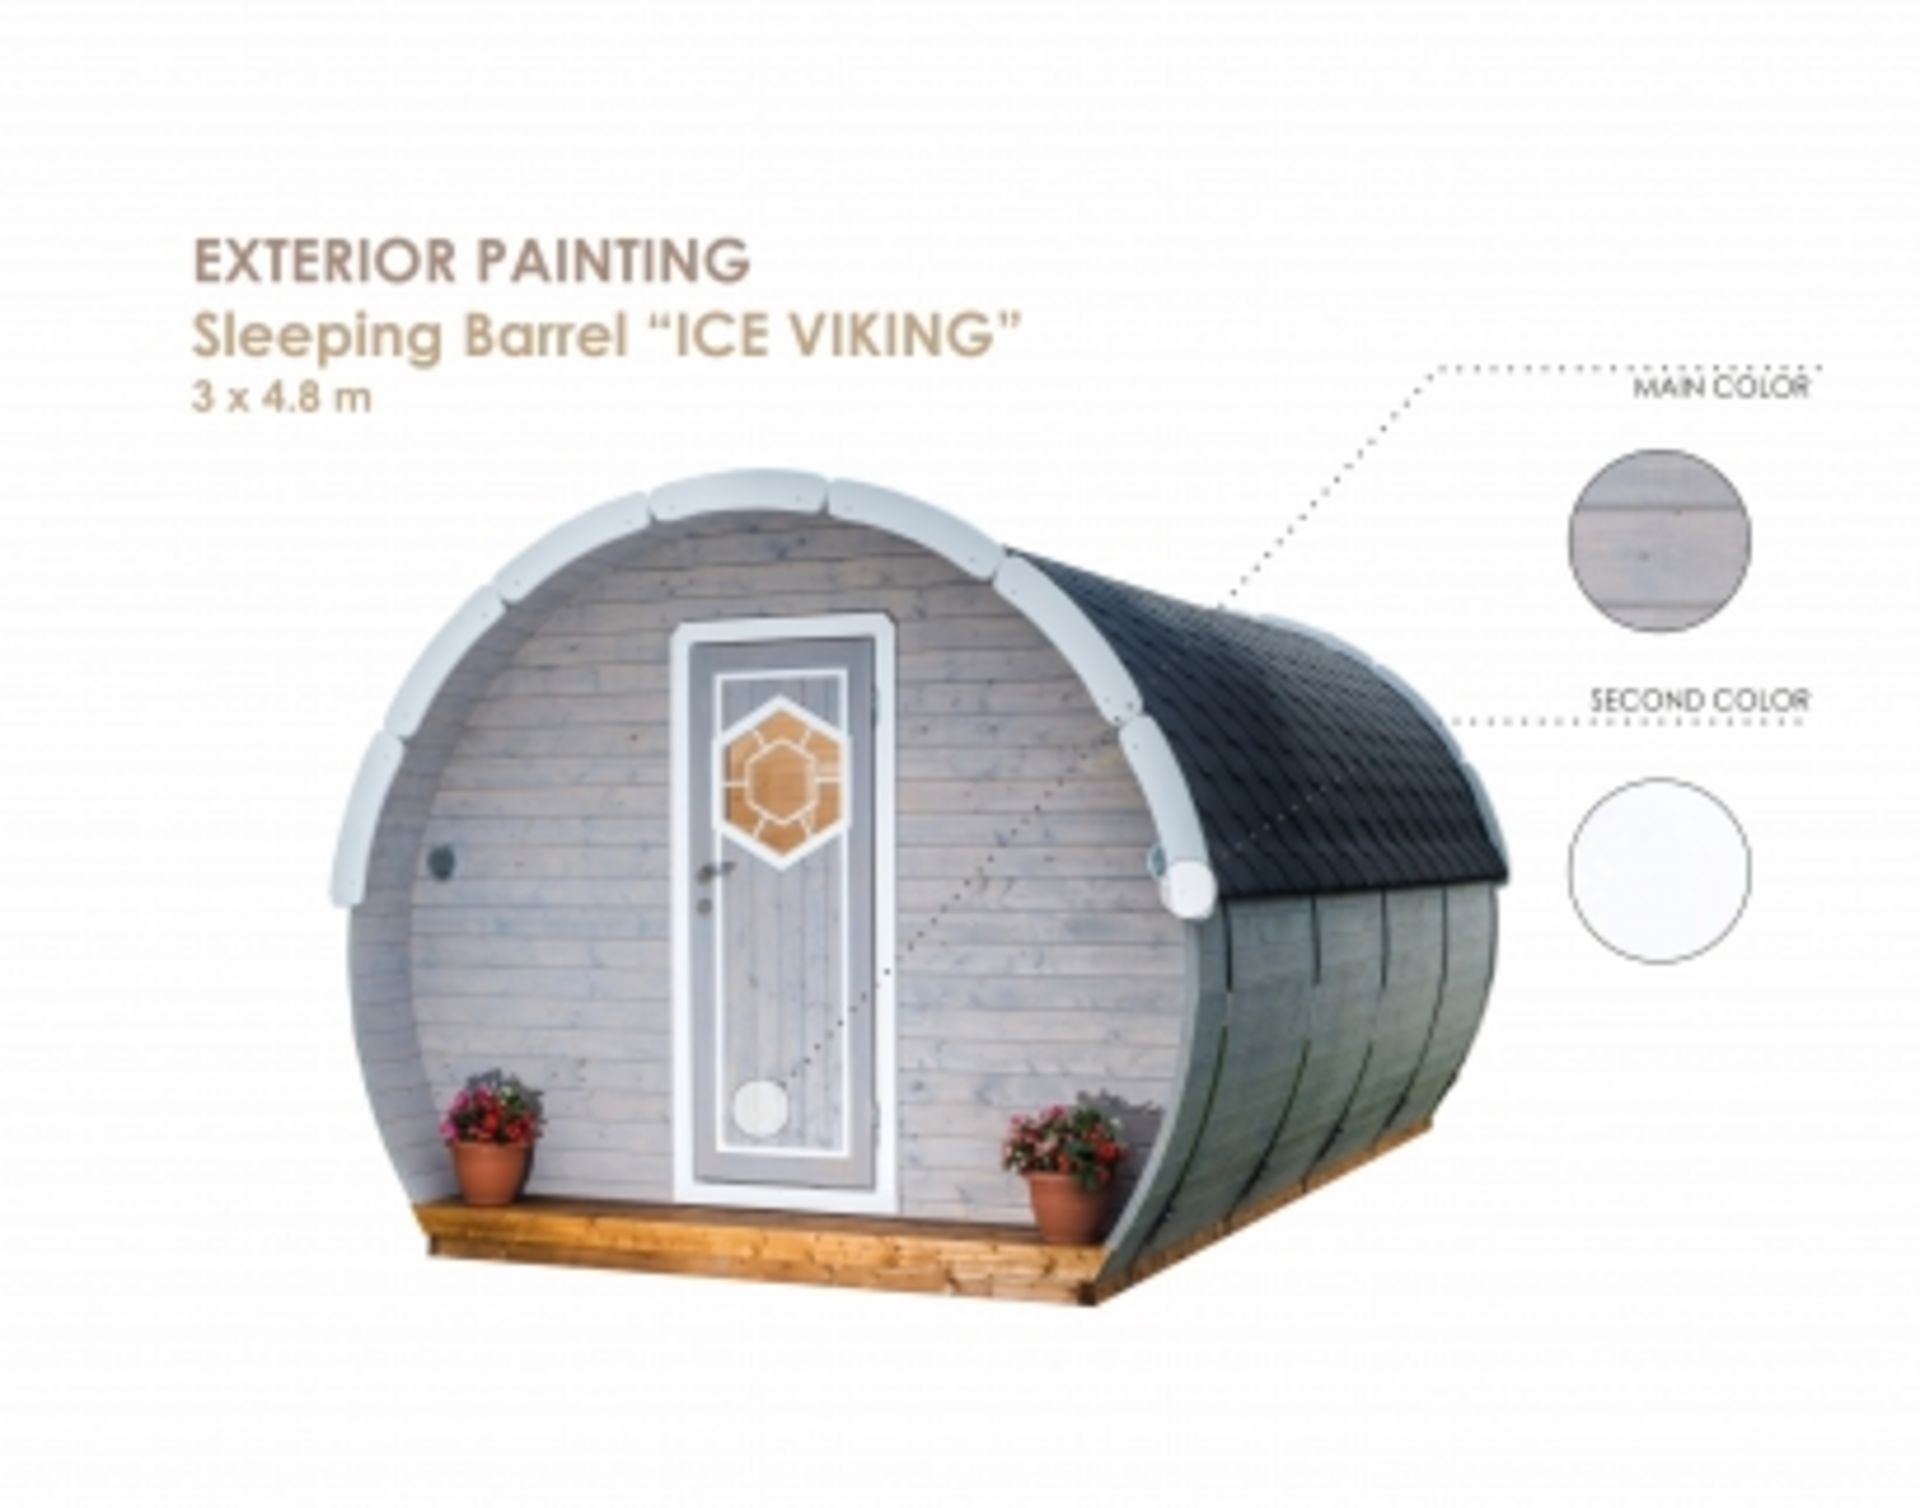 Lot 19003 - + VAT Brand New 3 x 4.8m Ice Viking Sleeping Barrel - Barrel Made From Spruce - Roof Covered With